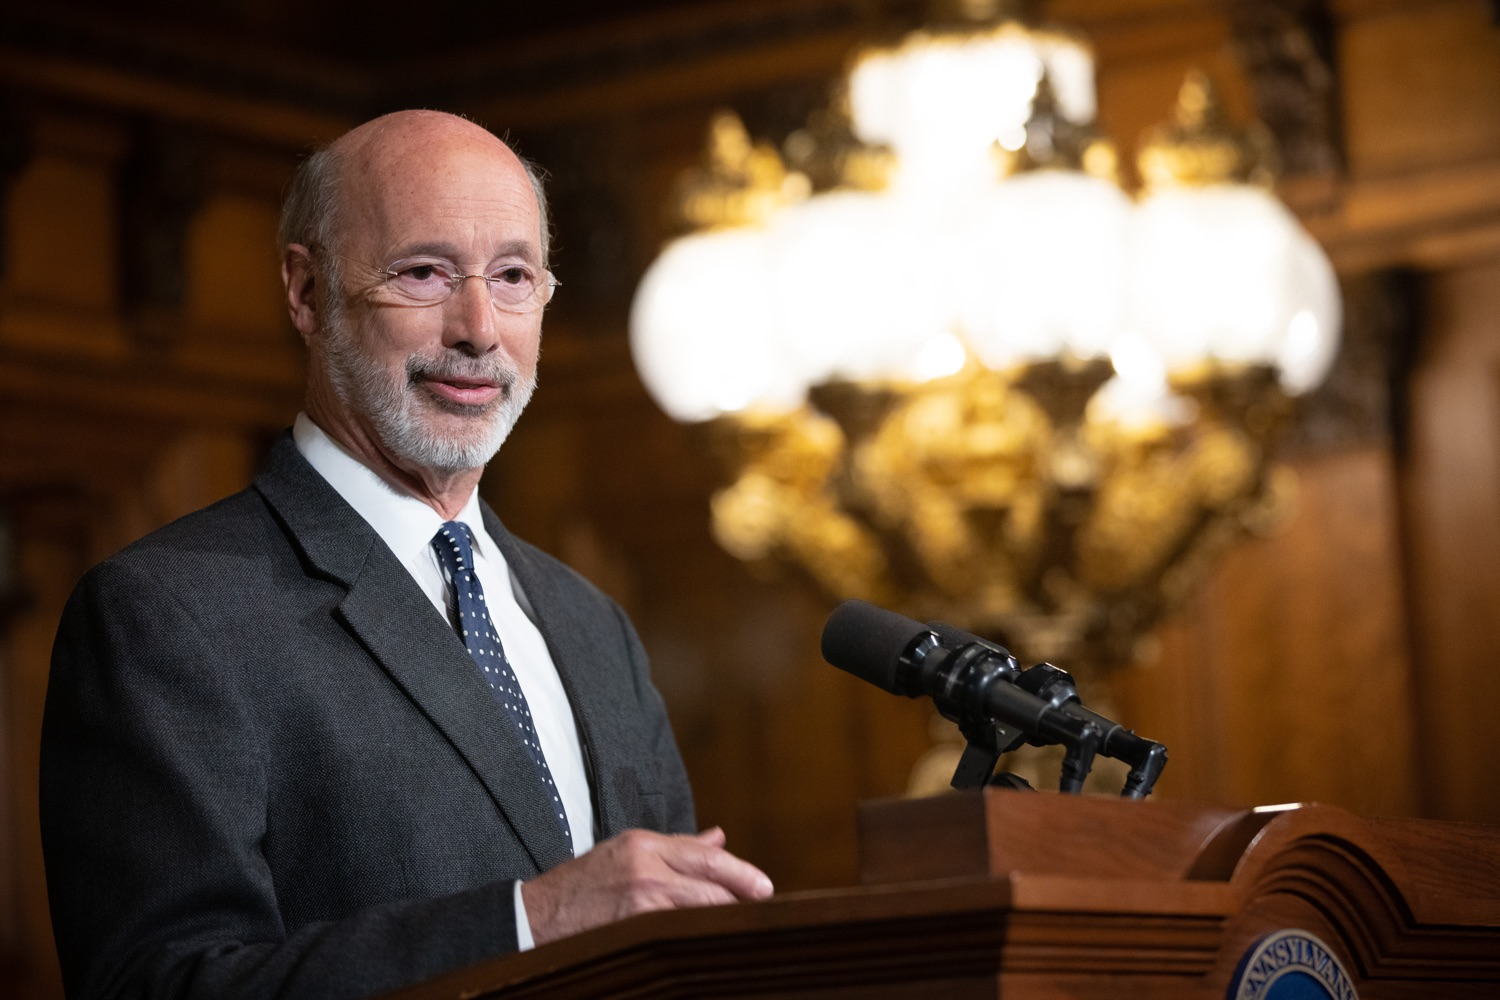 "<a href=""http://filesource.abacast.com/commonwealthofpa/photo/17423_gov_trip_recap_dz_012.jpg"" target=""_blank"">⇣ Download Photo<br></a>Harrisburg, PA  Governor Tom Wolf speaking about his recent visit to Lithuania and Poland.   Governor Tom Wolf today highlighted the second half of his trip abroad, including visiting with more than 500 PA National Guard (PNG) troops in Poland, and honoring the Tree of Life synagogue victims at the Auschwitz-Birkenau Memorial. Tuesday, September 17, 2019"